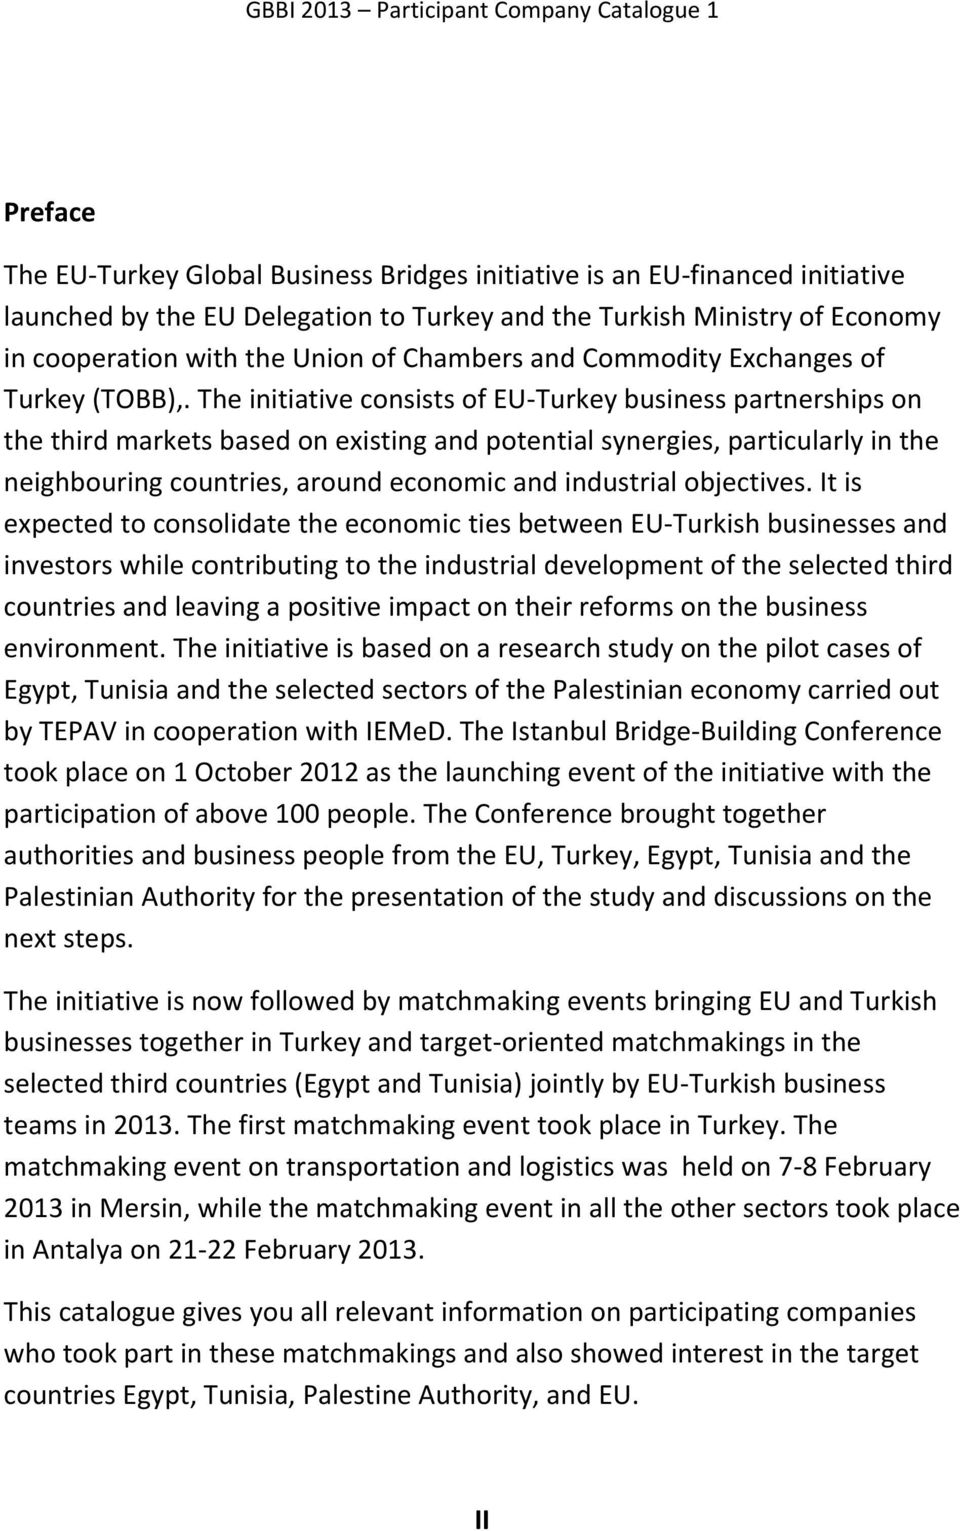 The initiative consists of EU Turkey business partnerships on the third markets based on existing and potential synergies, particularly in the neighbouring countries, around economic and industrial